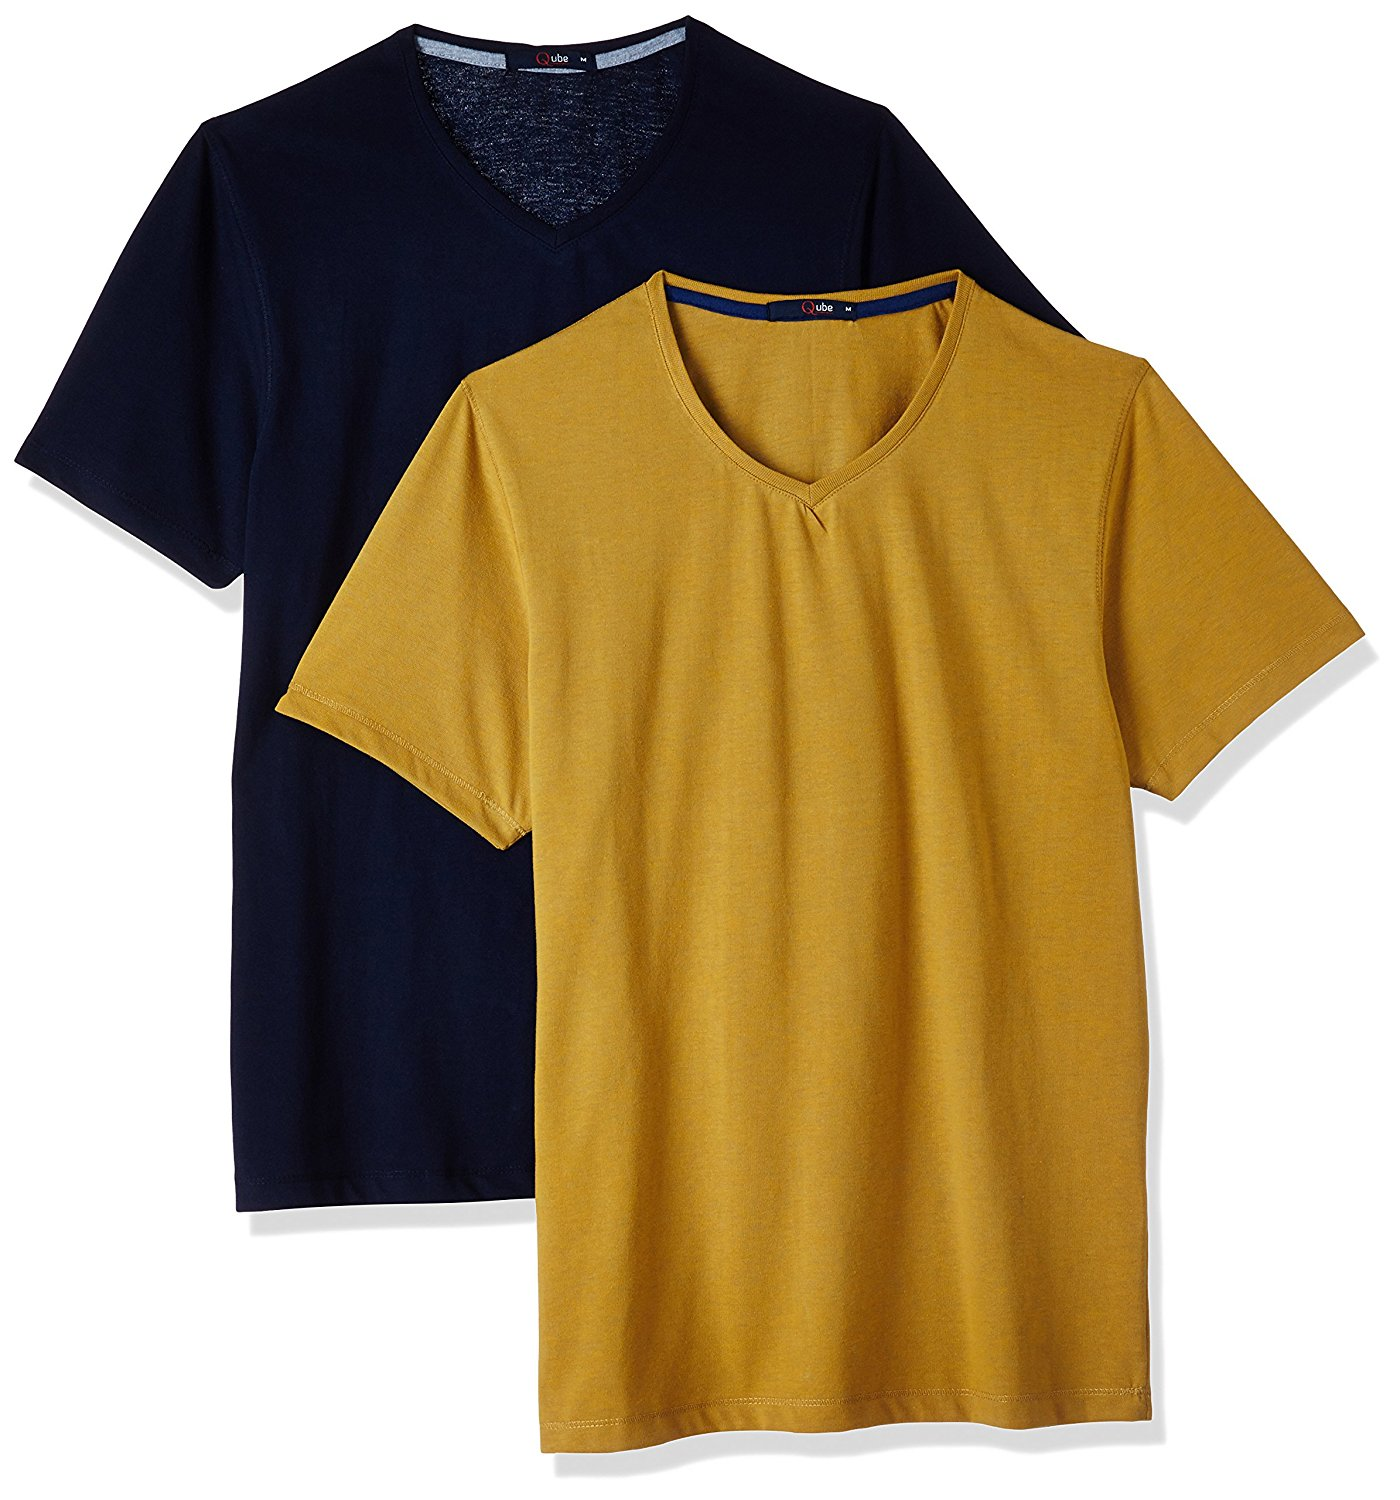 Qube by Fort Collins Men's T-Shirt (Pack of 2) at Rs.319 only